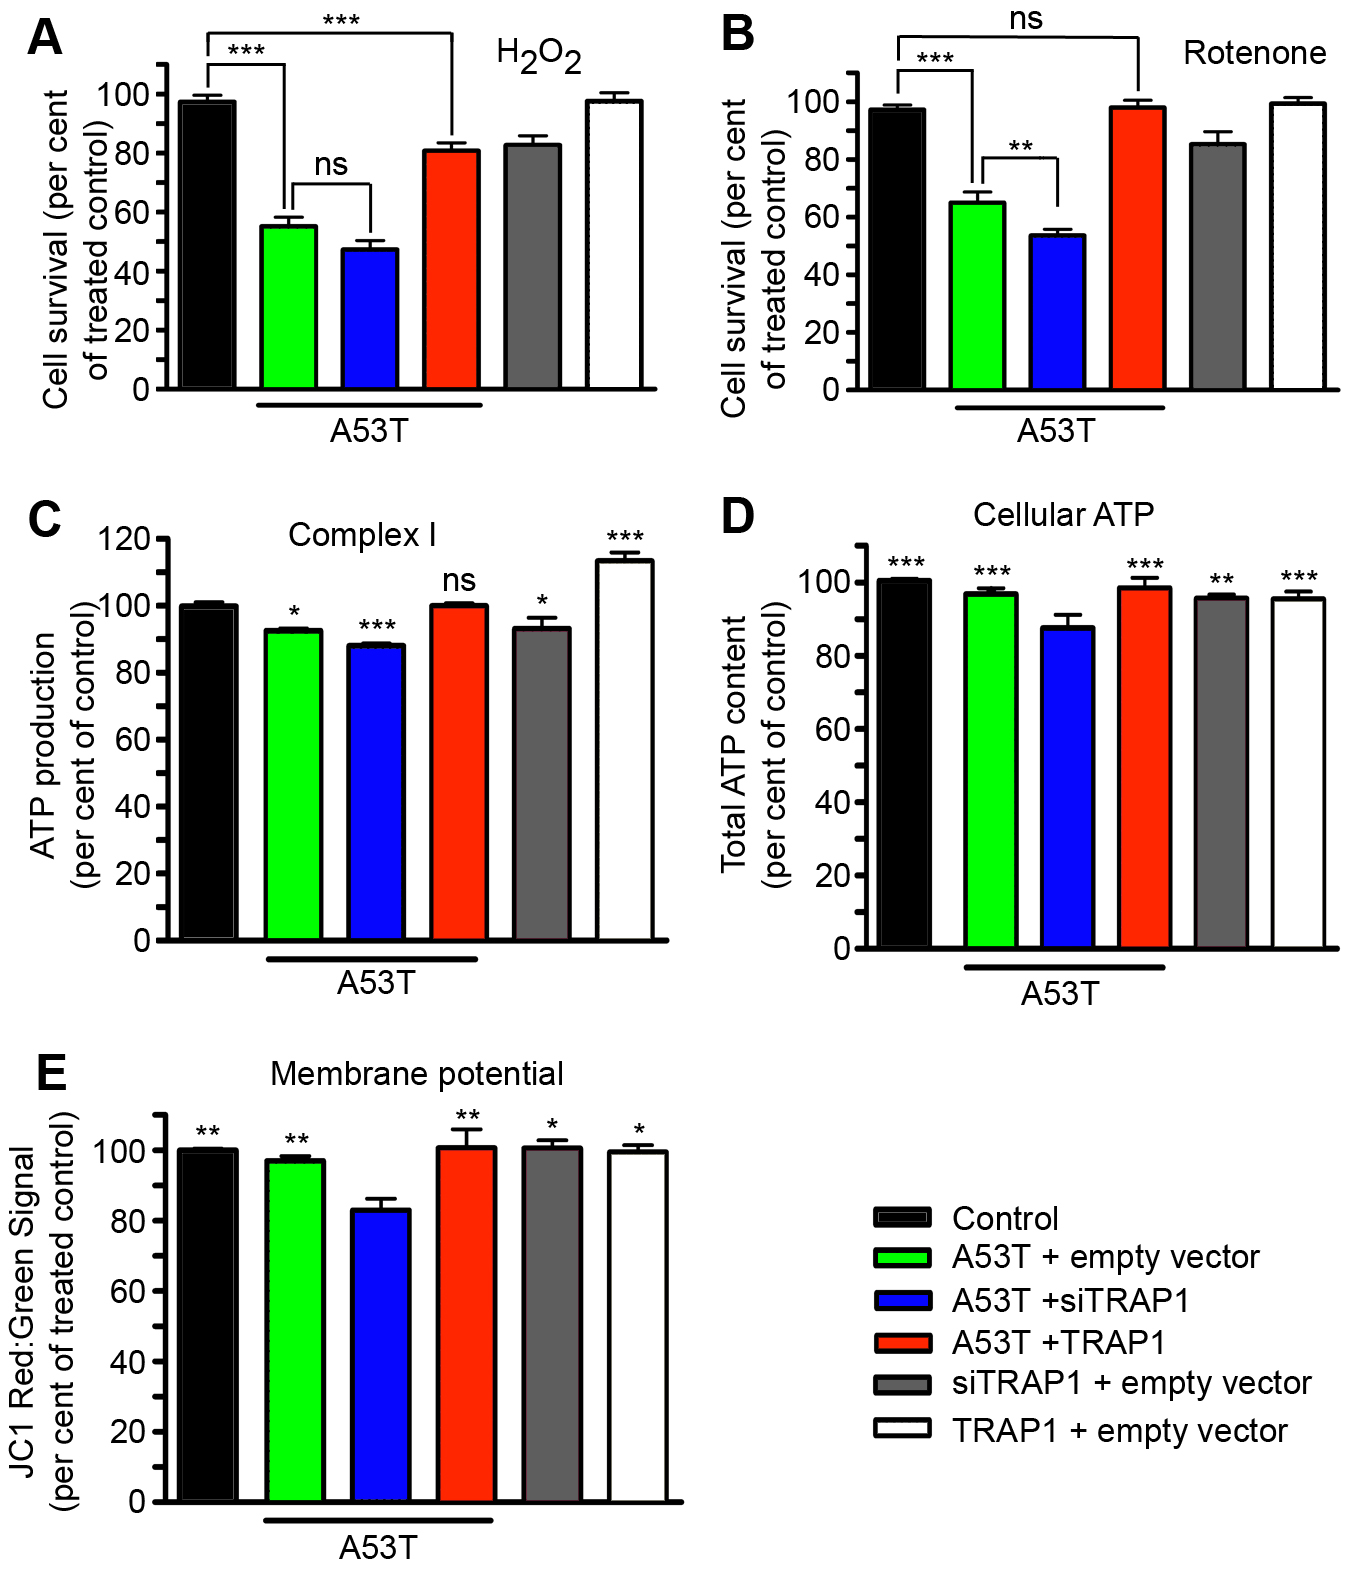 Alterations in TRAP1 levels influence [A53T]α-Synuclein-induced sensitivity to oxidative stress and mitochondrial effects in HEK293 cells.